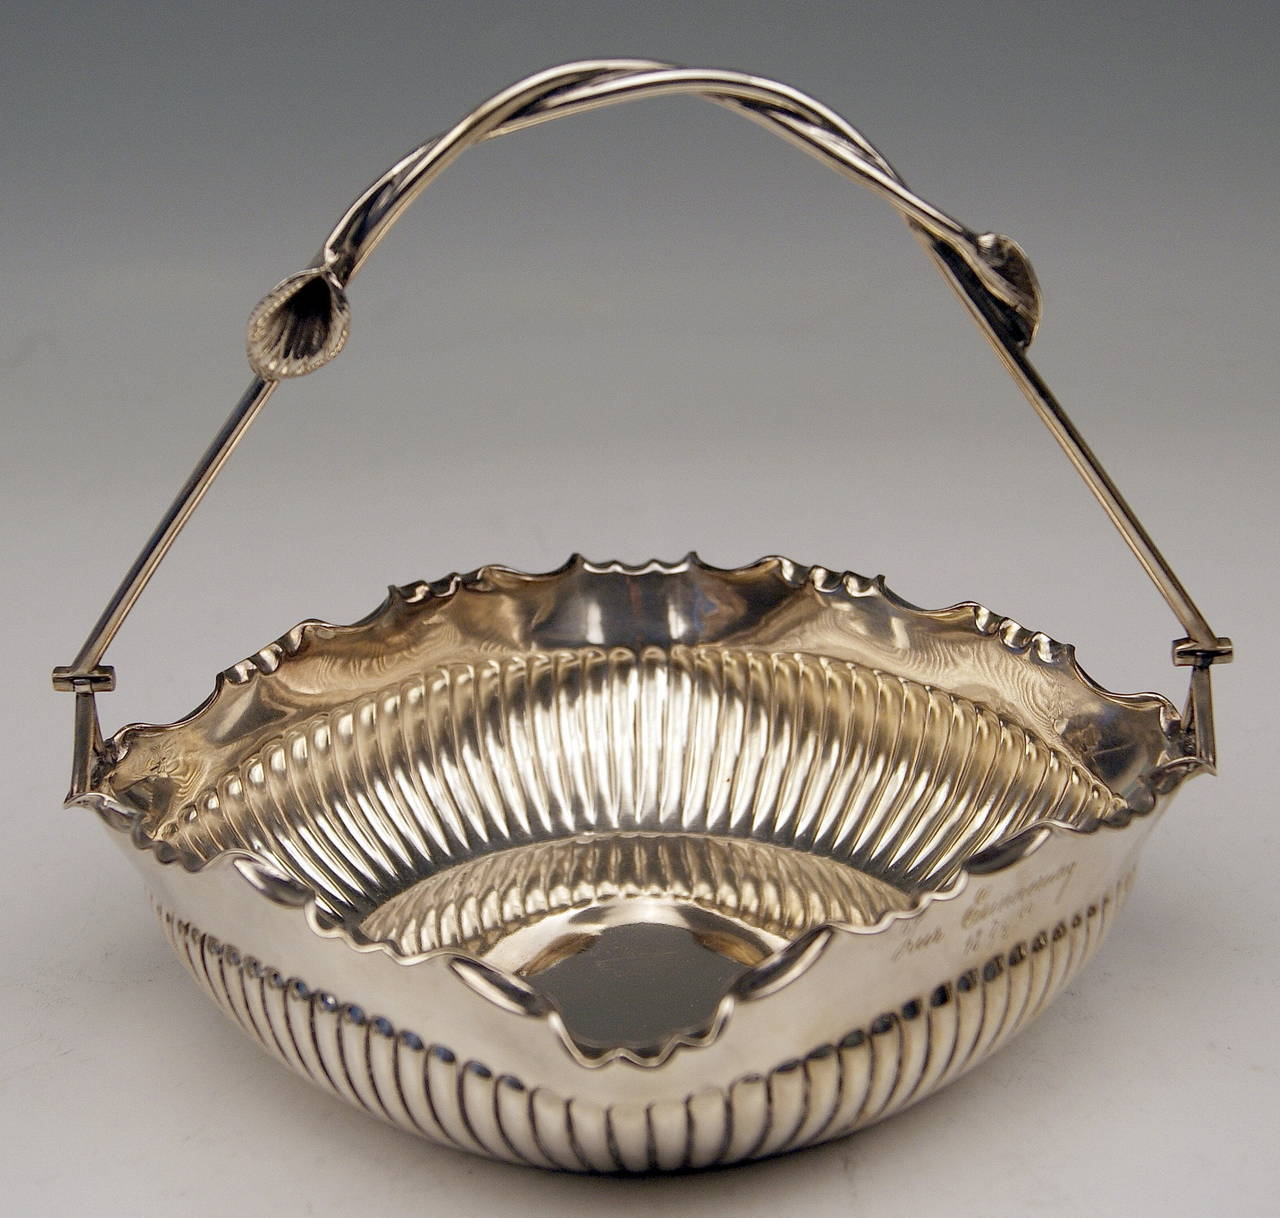 German Silver Baskets with Handles by W. Binder & Ap, Made before 1899 In Excellent Condition For Sale In Vienna, AT